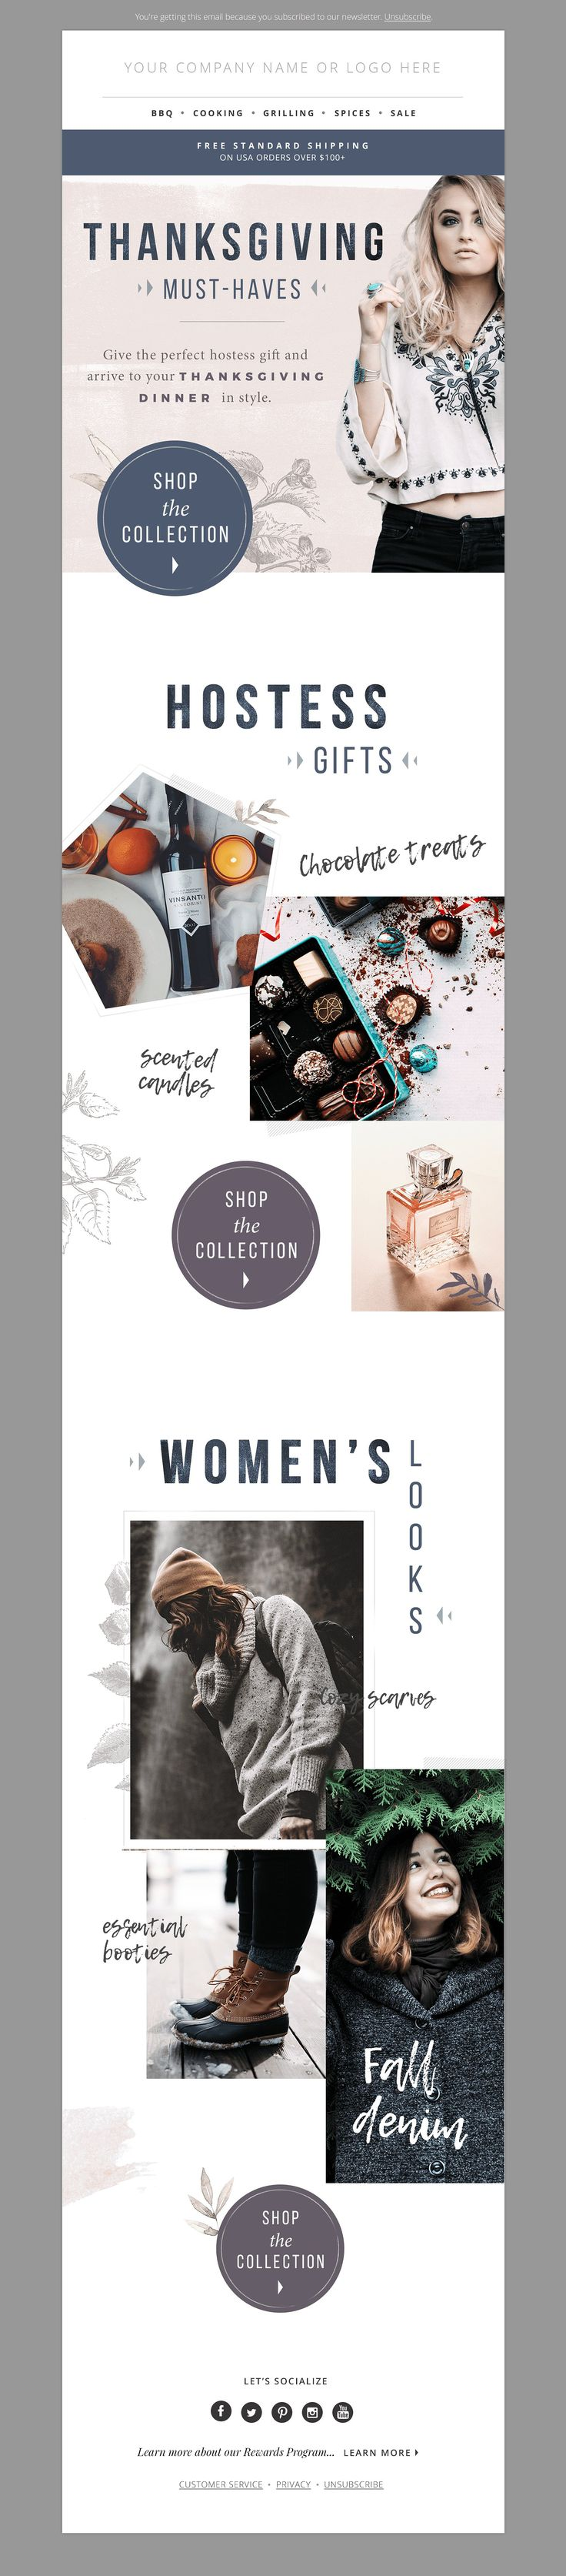 The 1401 best Email Design Ispiration images on Pinterest | Email ...